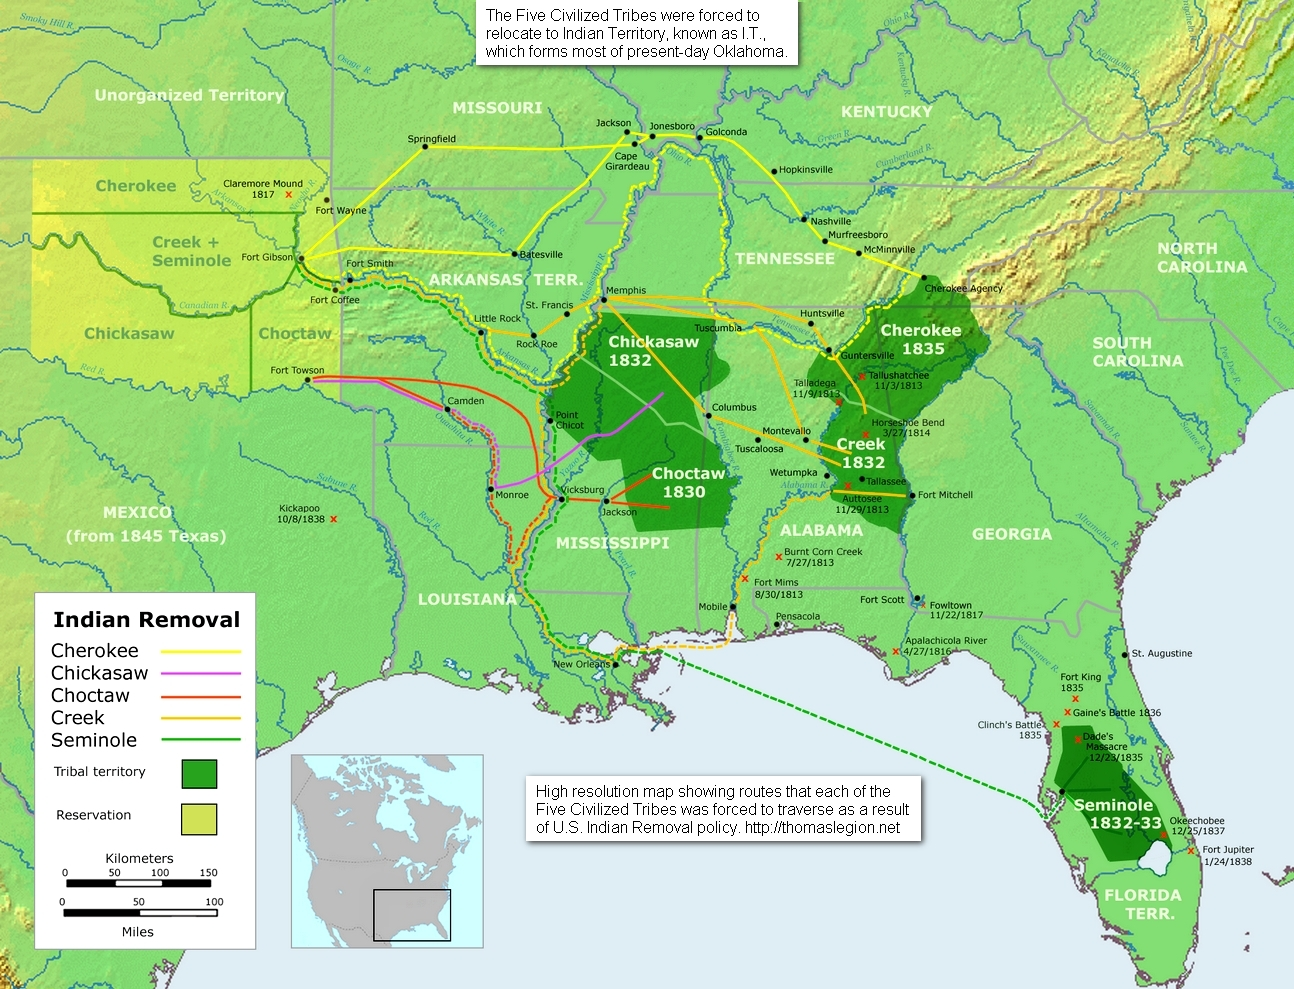 Cherokee Indian Removal and Trail of Tears.jpg